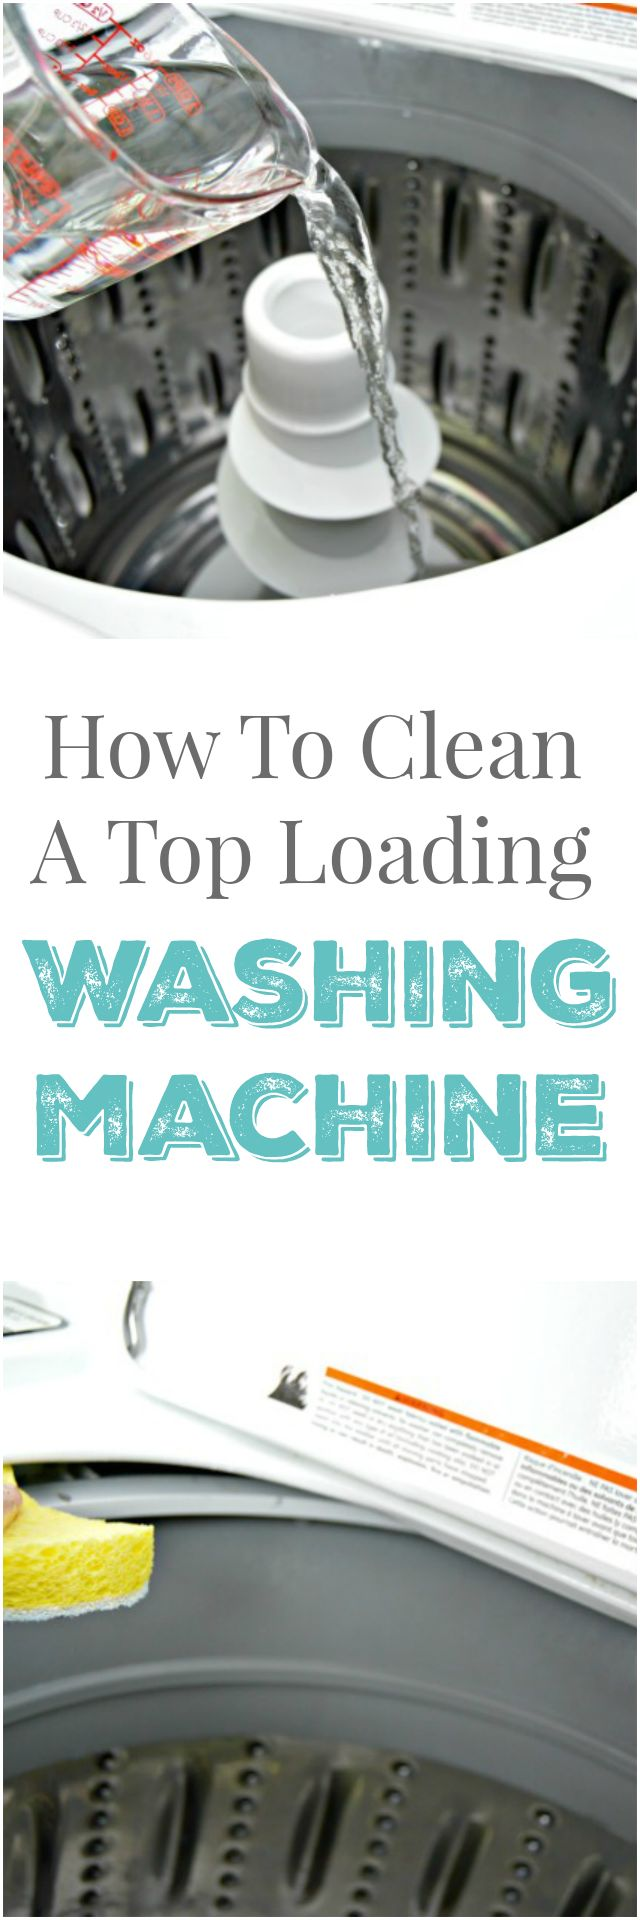 How To Clean a Top Loading Washing Machine - All Natural - Step by step instructions showing how to clean a top loading washing machine with natural ingredients. No chemicals needed, just a little vinegar and a sponge! via @Mom4Real